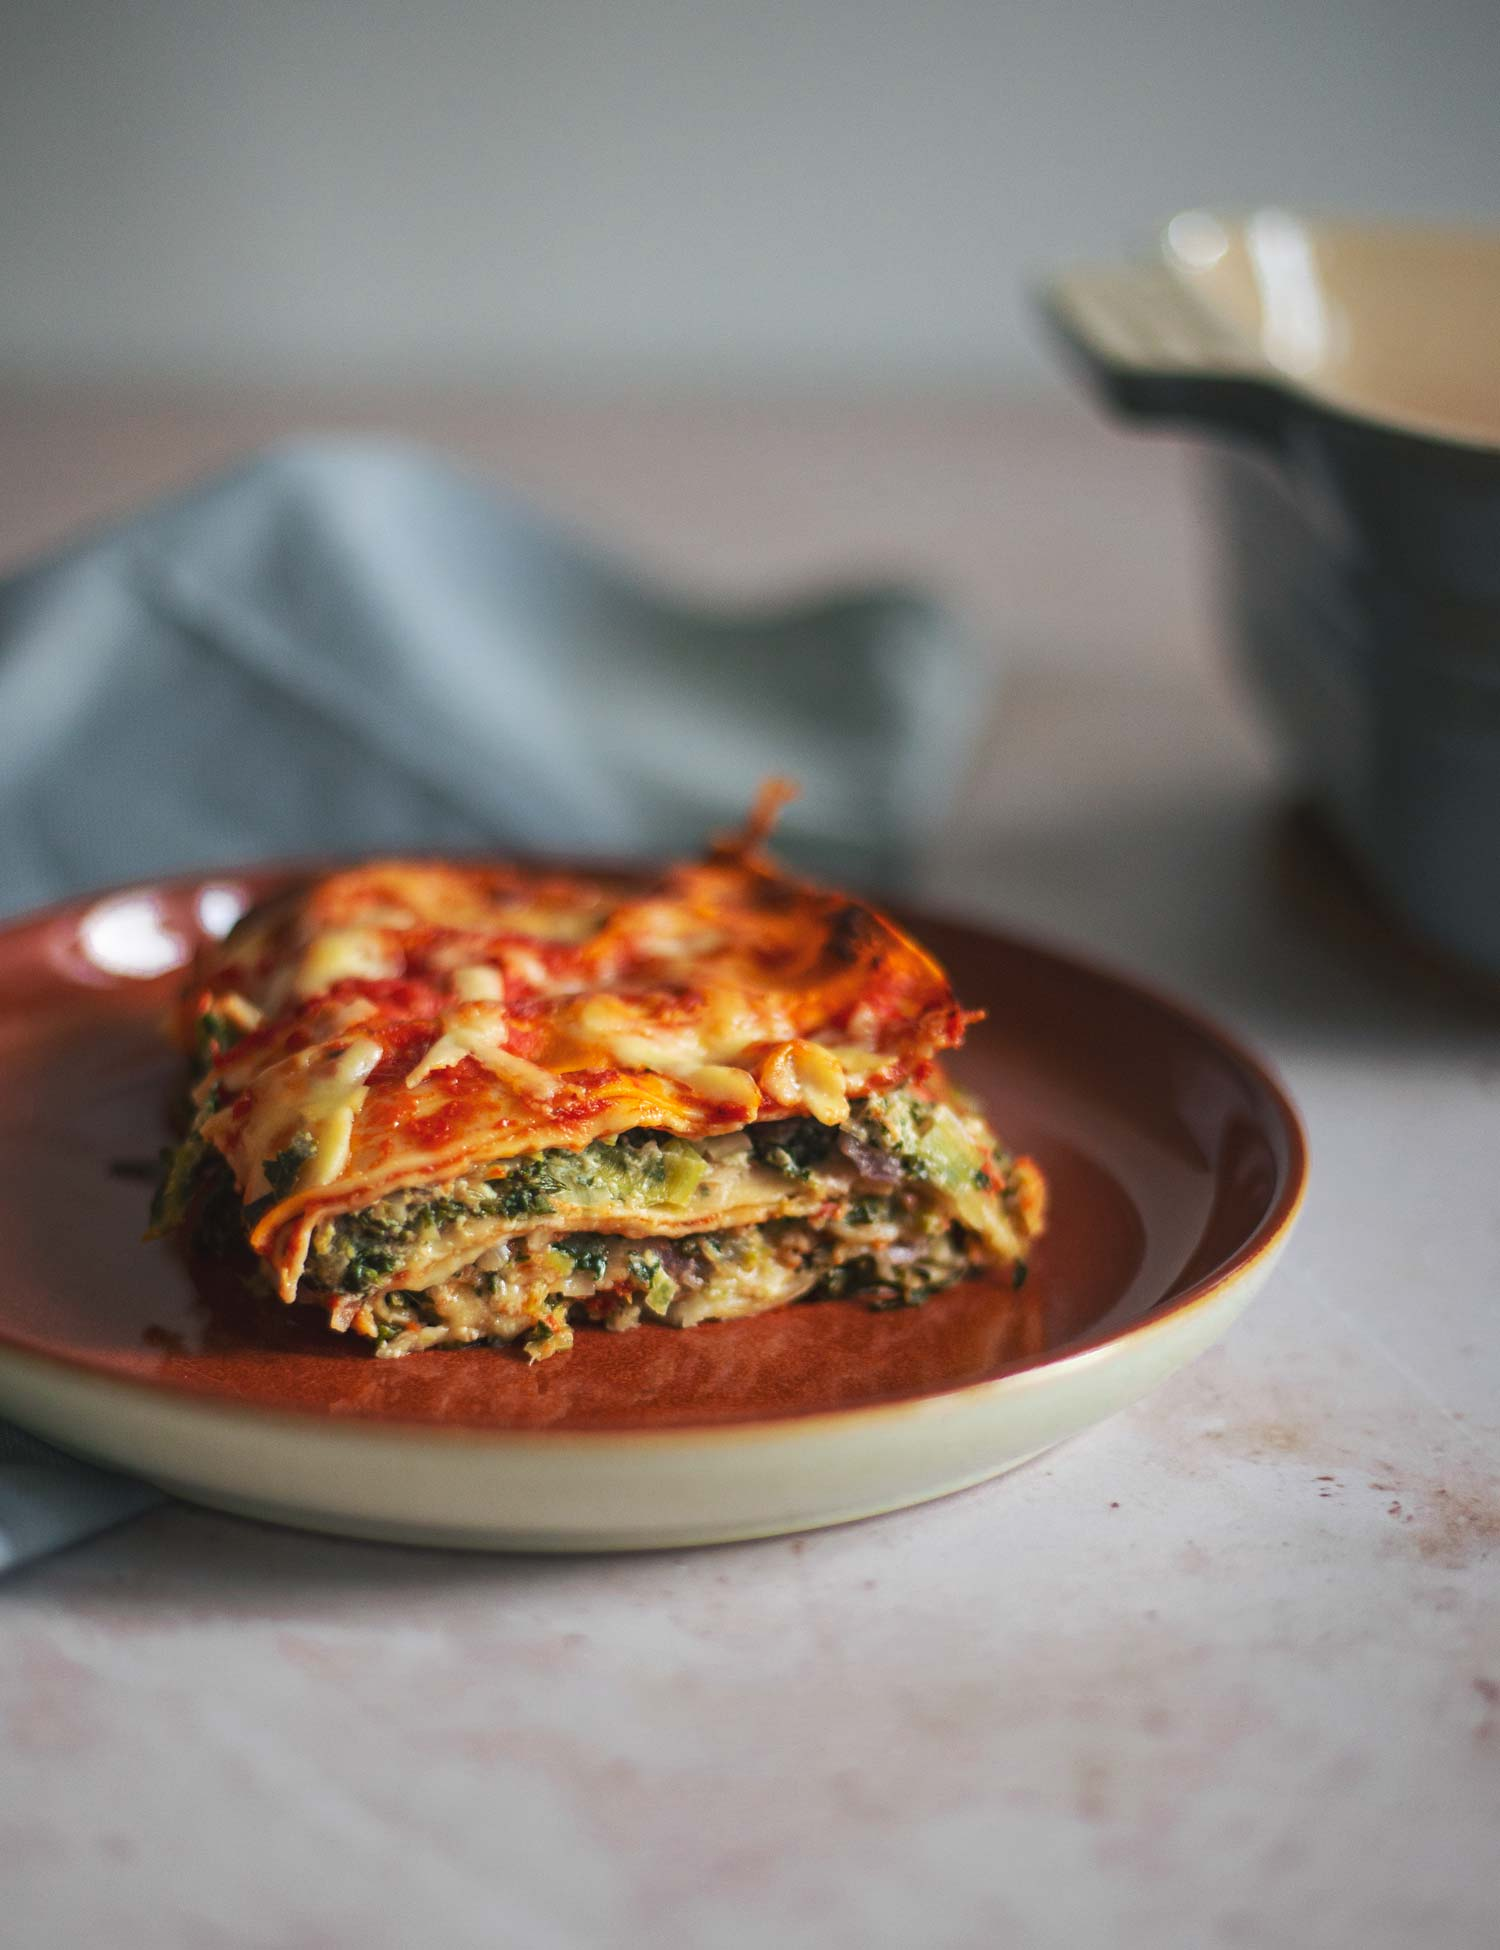 A slice of lasagne on a red plate with a casserole dish in the background